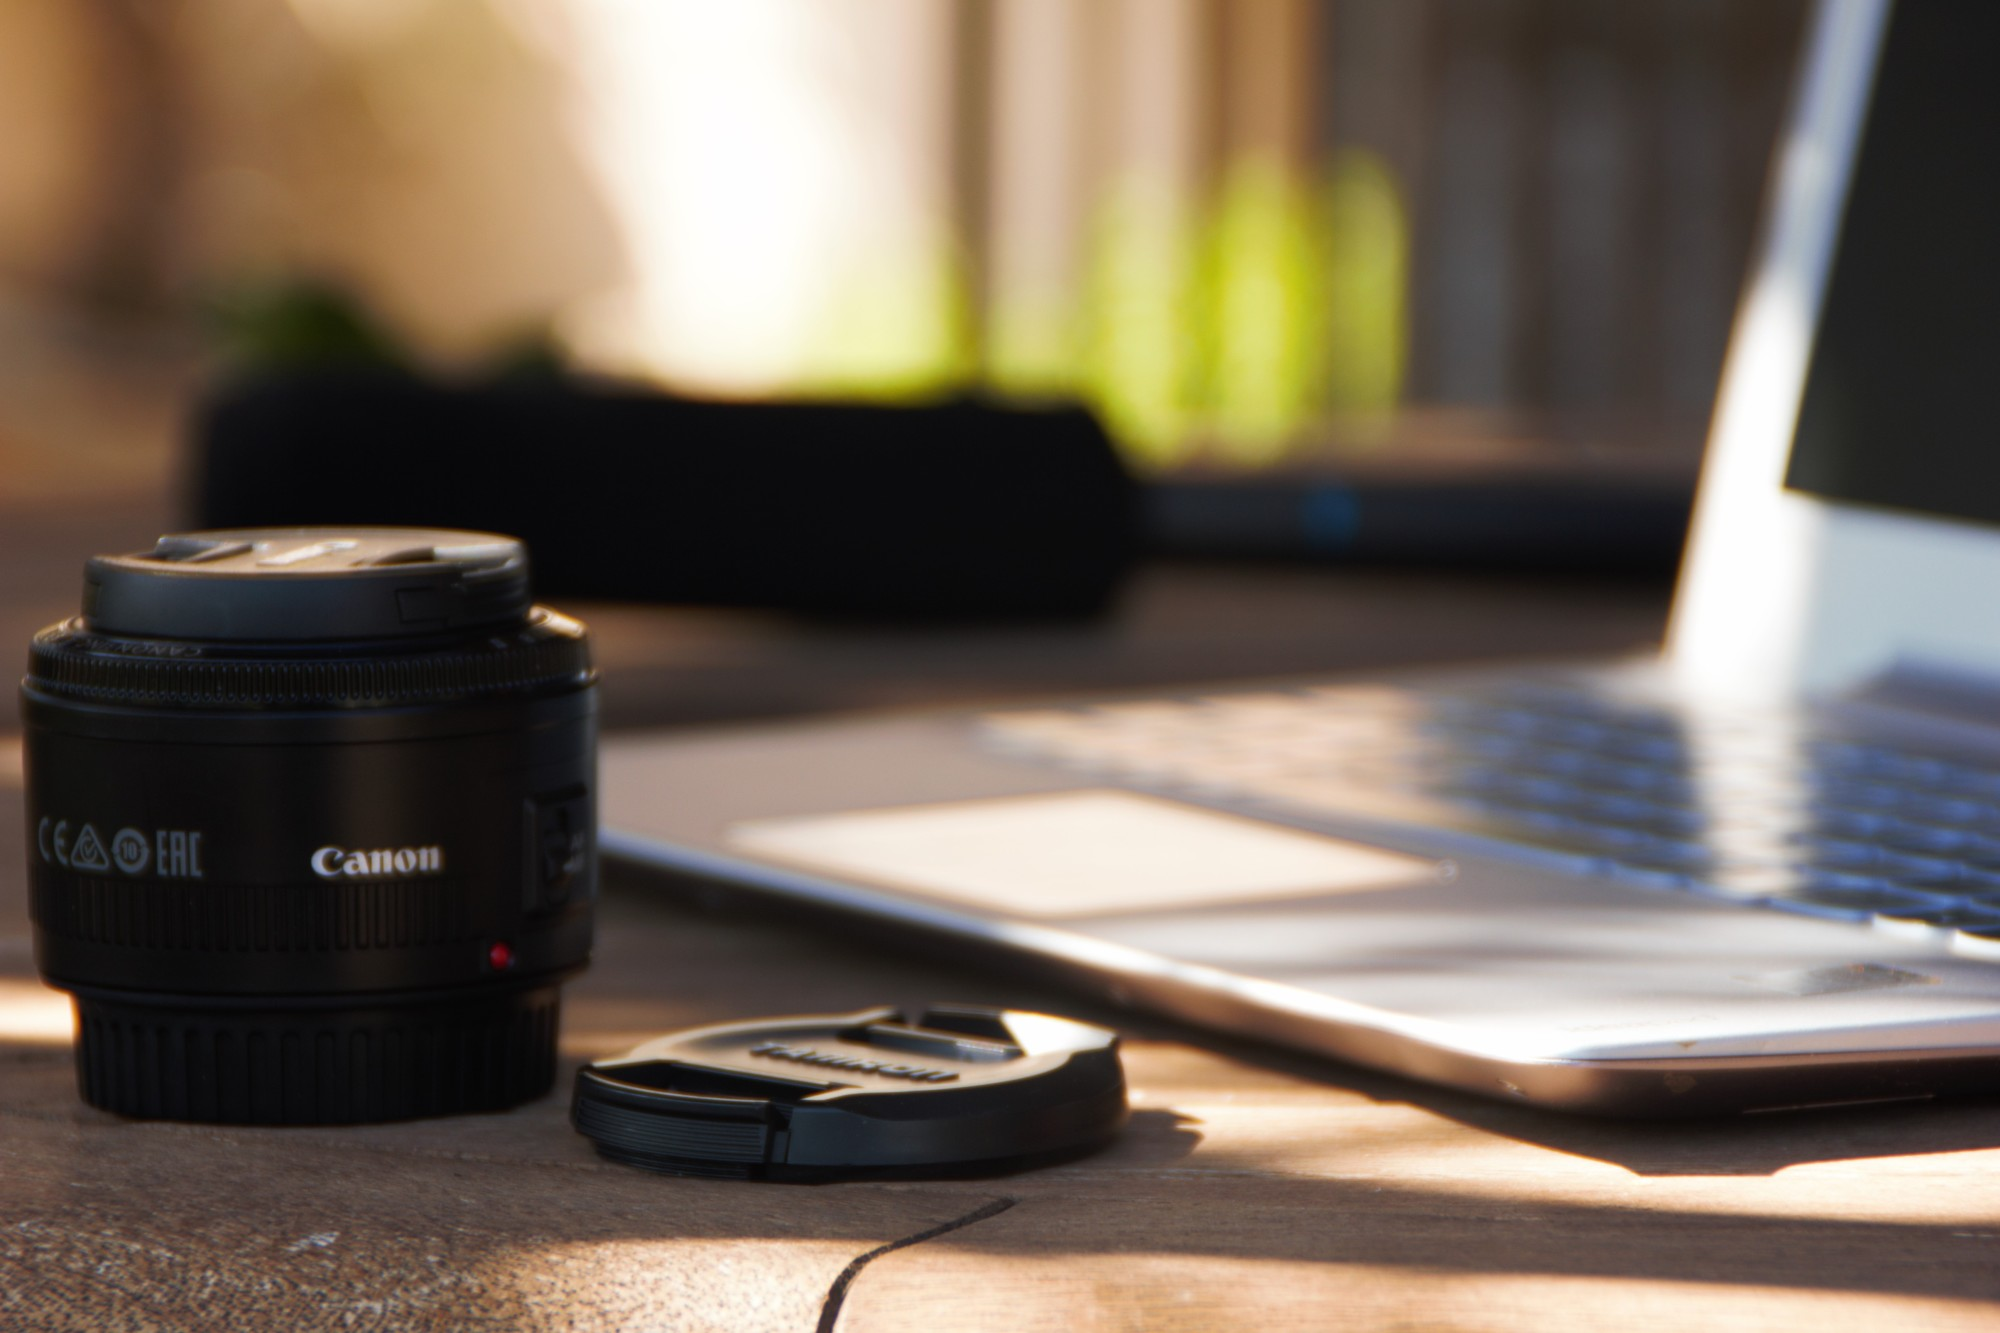 Camera Lens and a Laptop